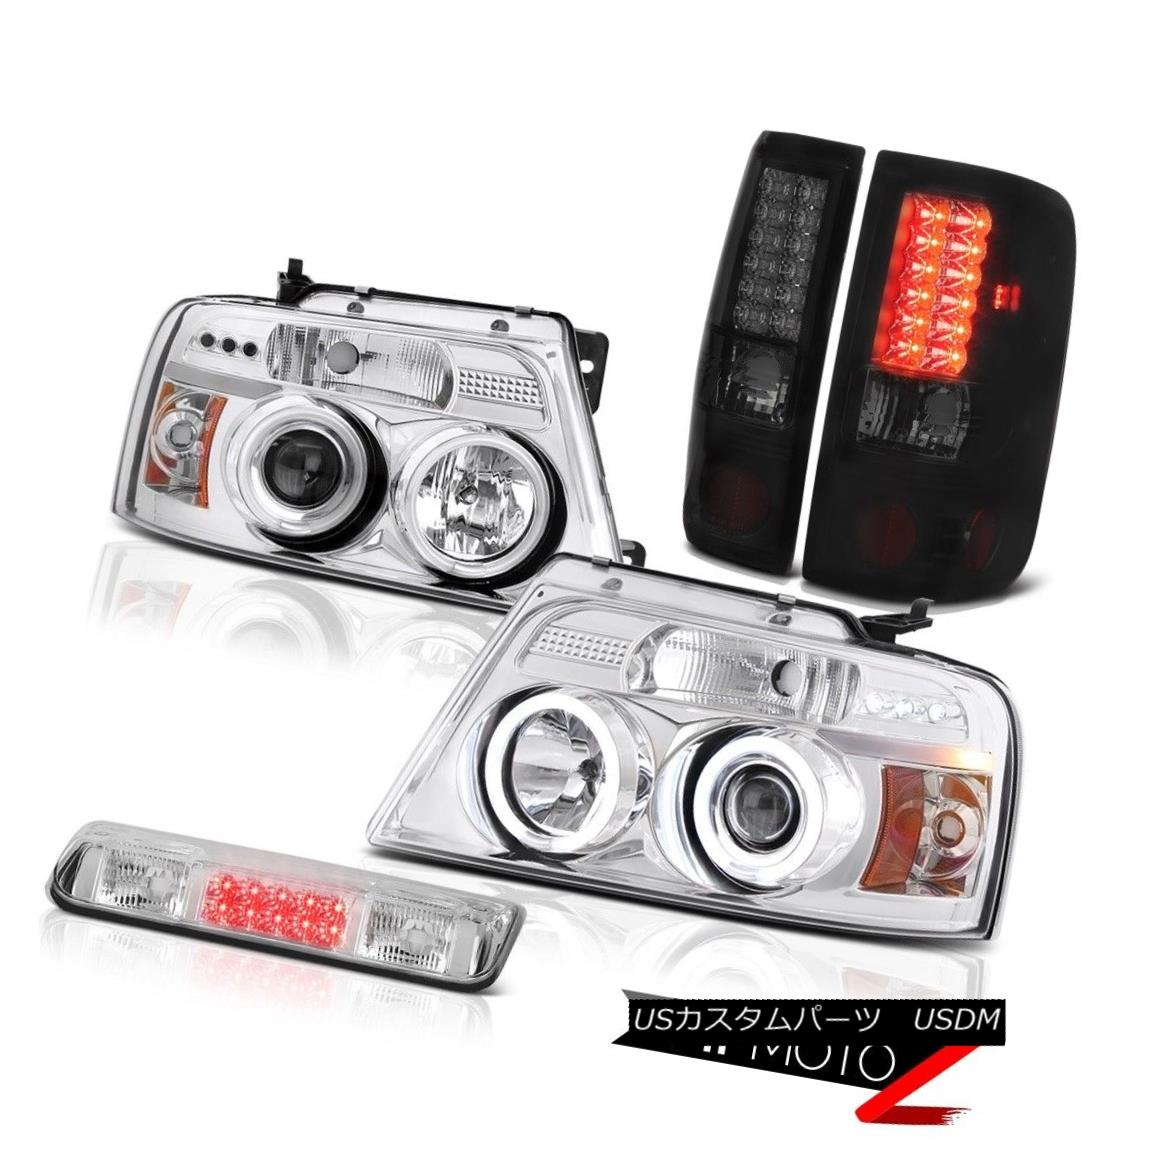 テールライト 04-08 Ford F150 FX4 Roof Cargo Lamp Headlights Rear Brake Lamps LED CCFL Halo 04-08 Ford F150 FX4ルーフカーゴランプヘッドライトリアブレーキランプLED CCFL Halo